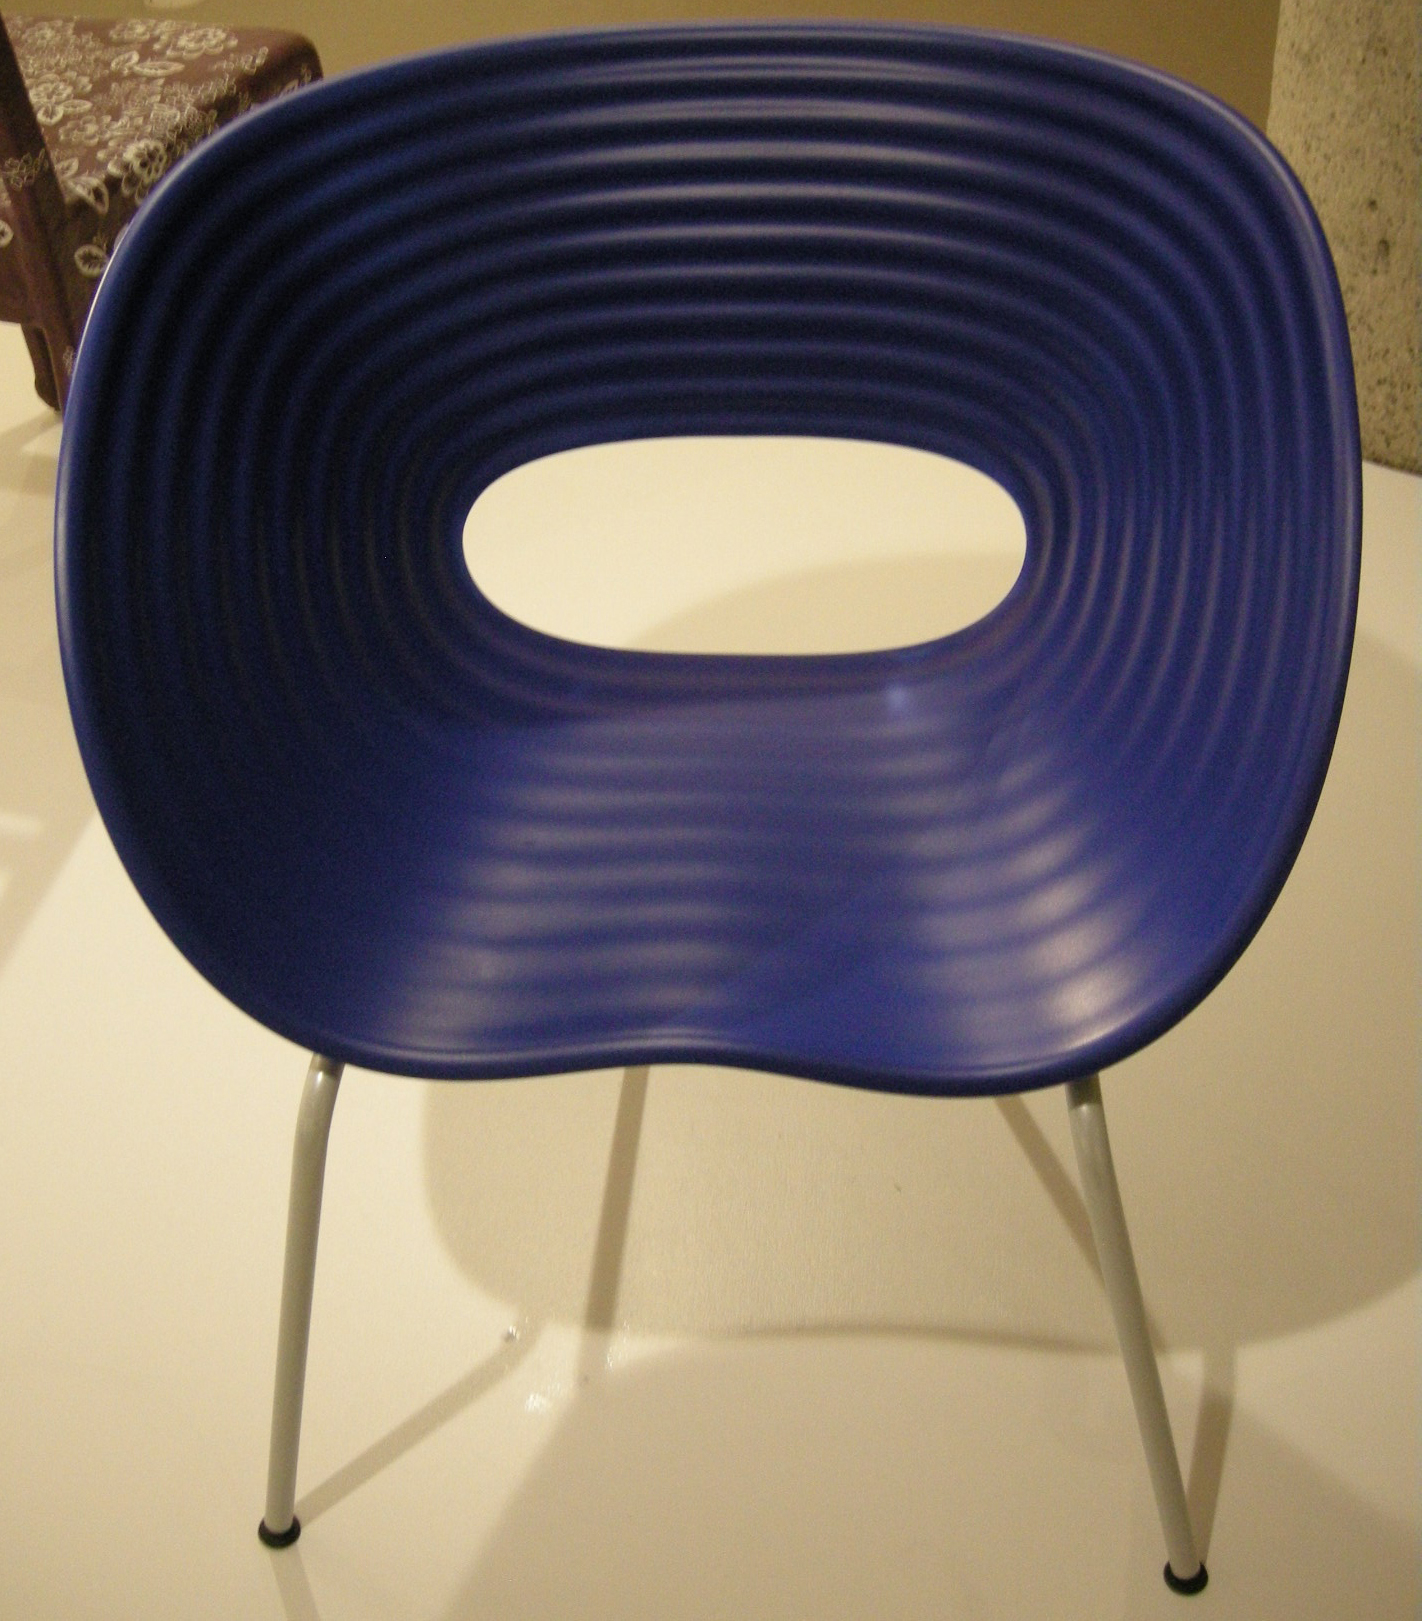 File Ngv design ron arad tom vac chair 1997 JPG